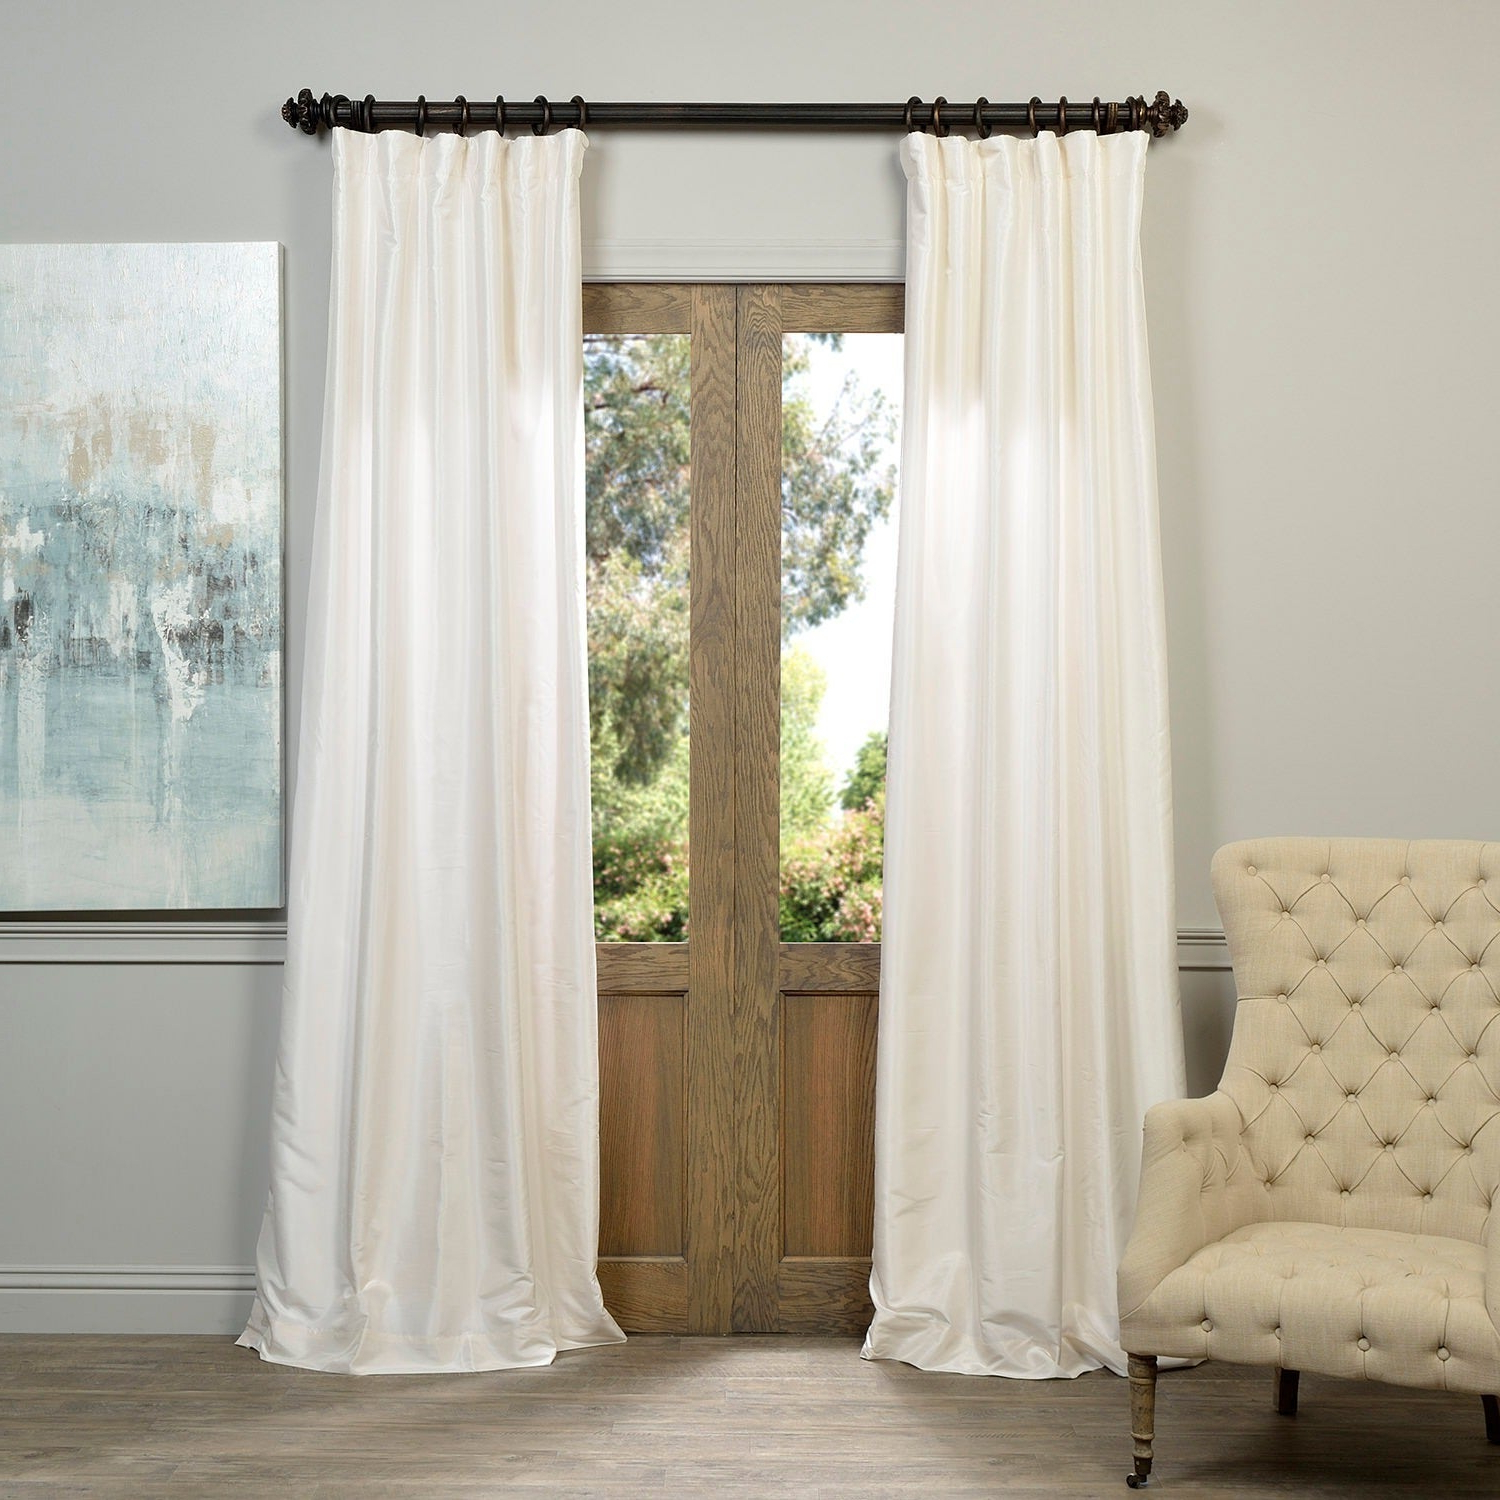 Exclusive Fabrics Off White Vintage Faux Textured Dupioni Silk Curtain (Gallery 2 of 20)